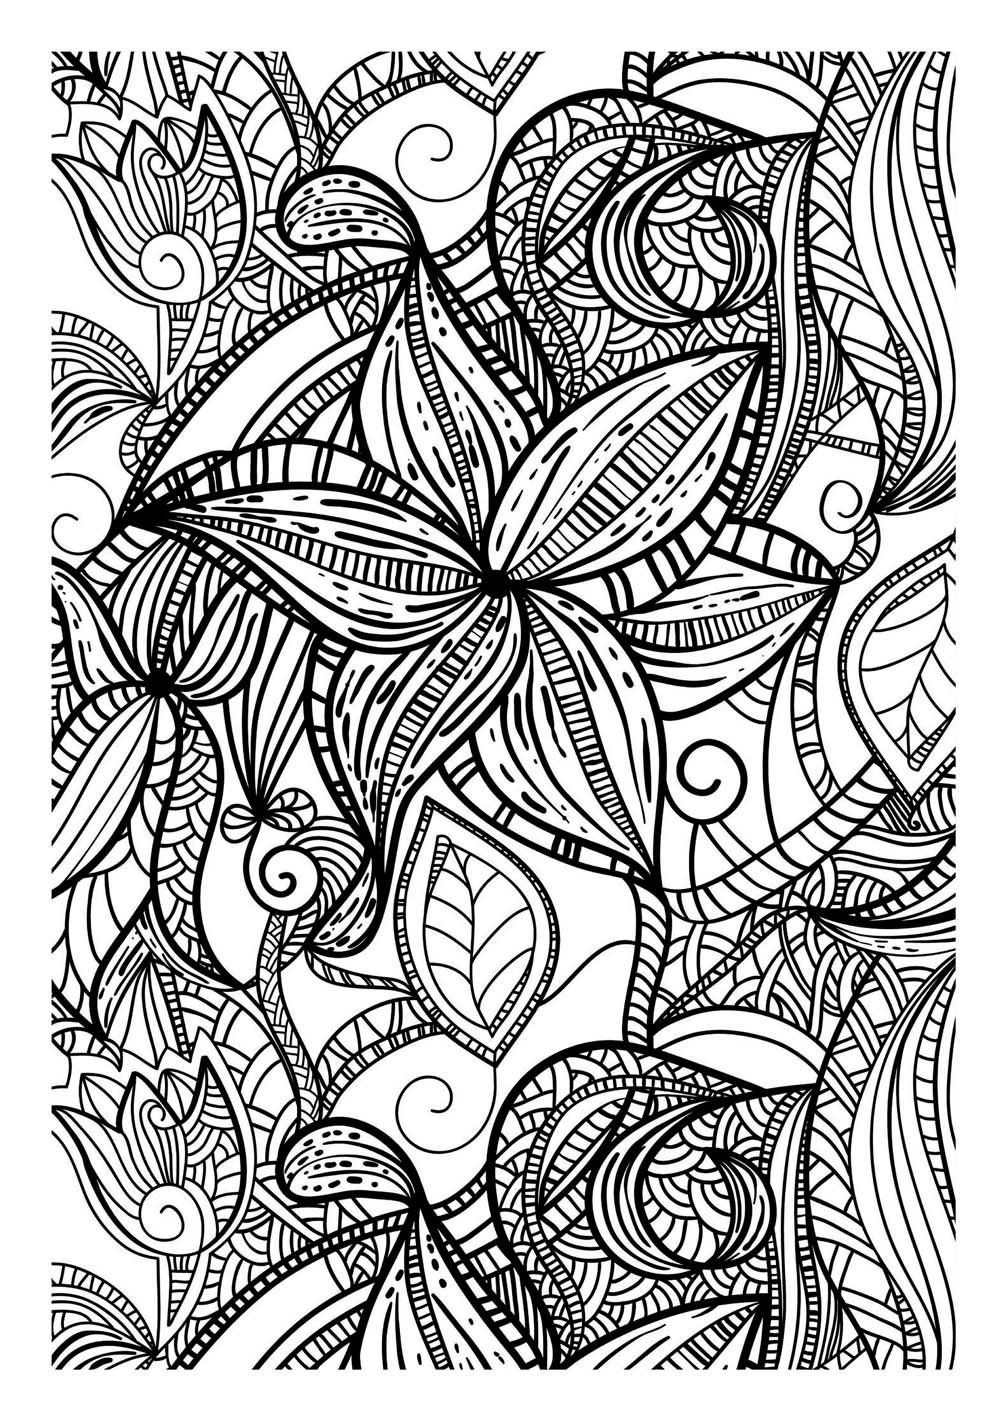 art therapy coloring pages - Art Therapy Coloring Pages Animals